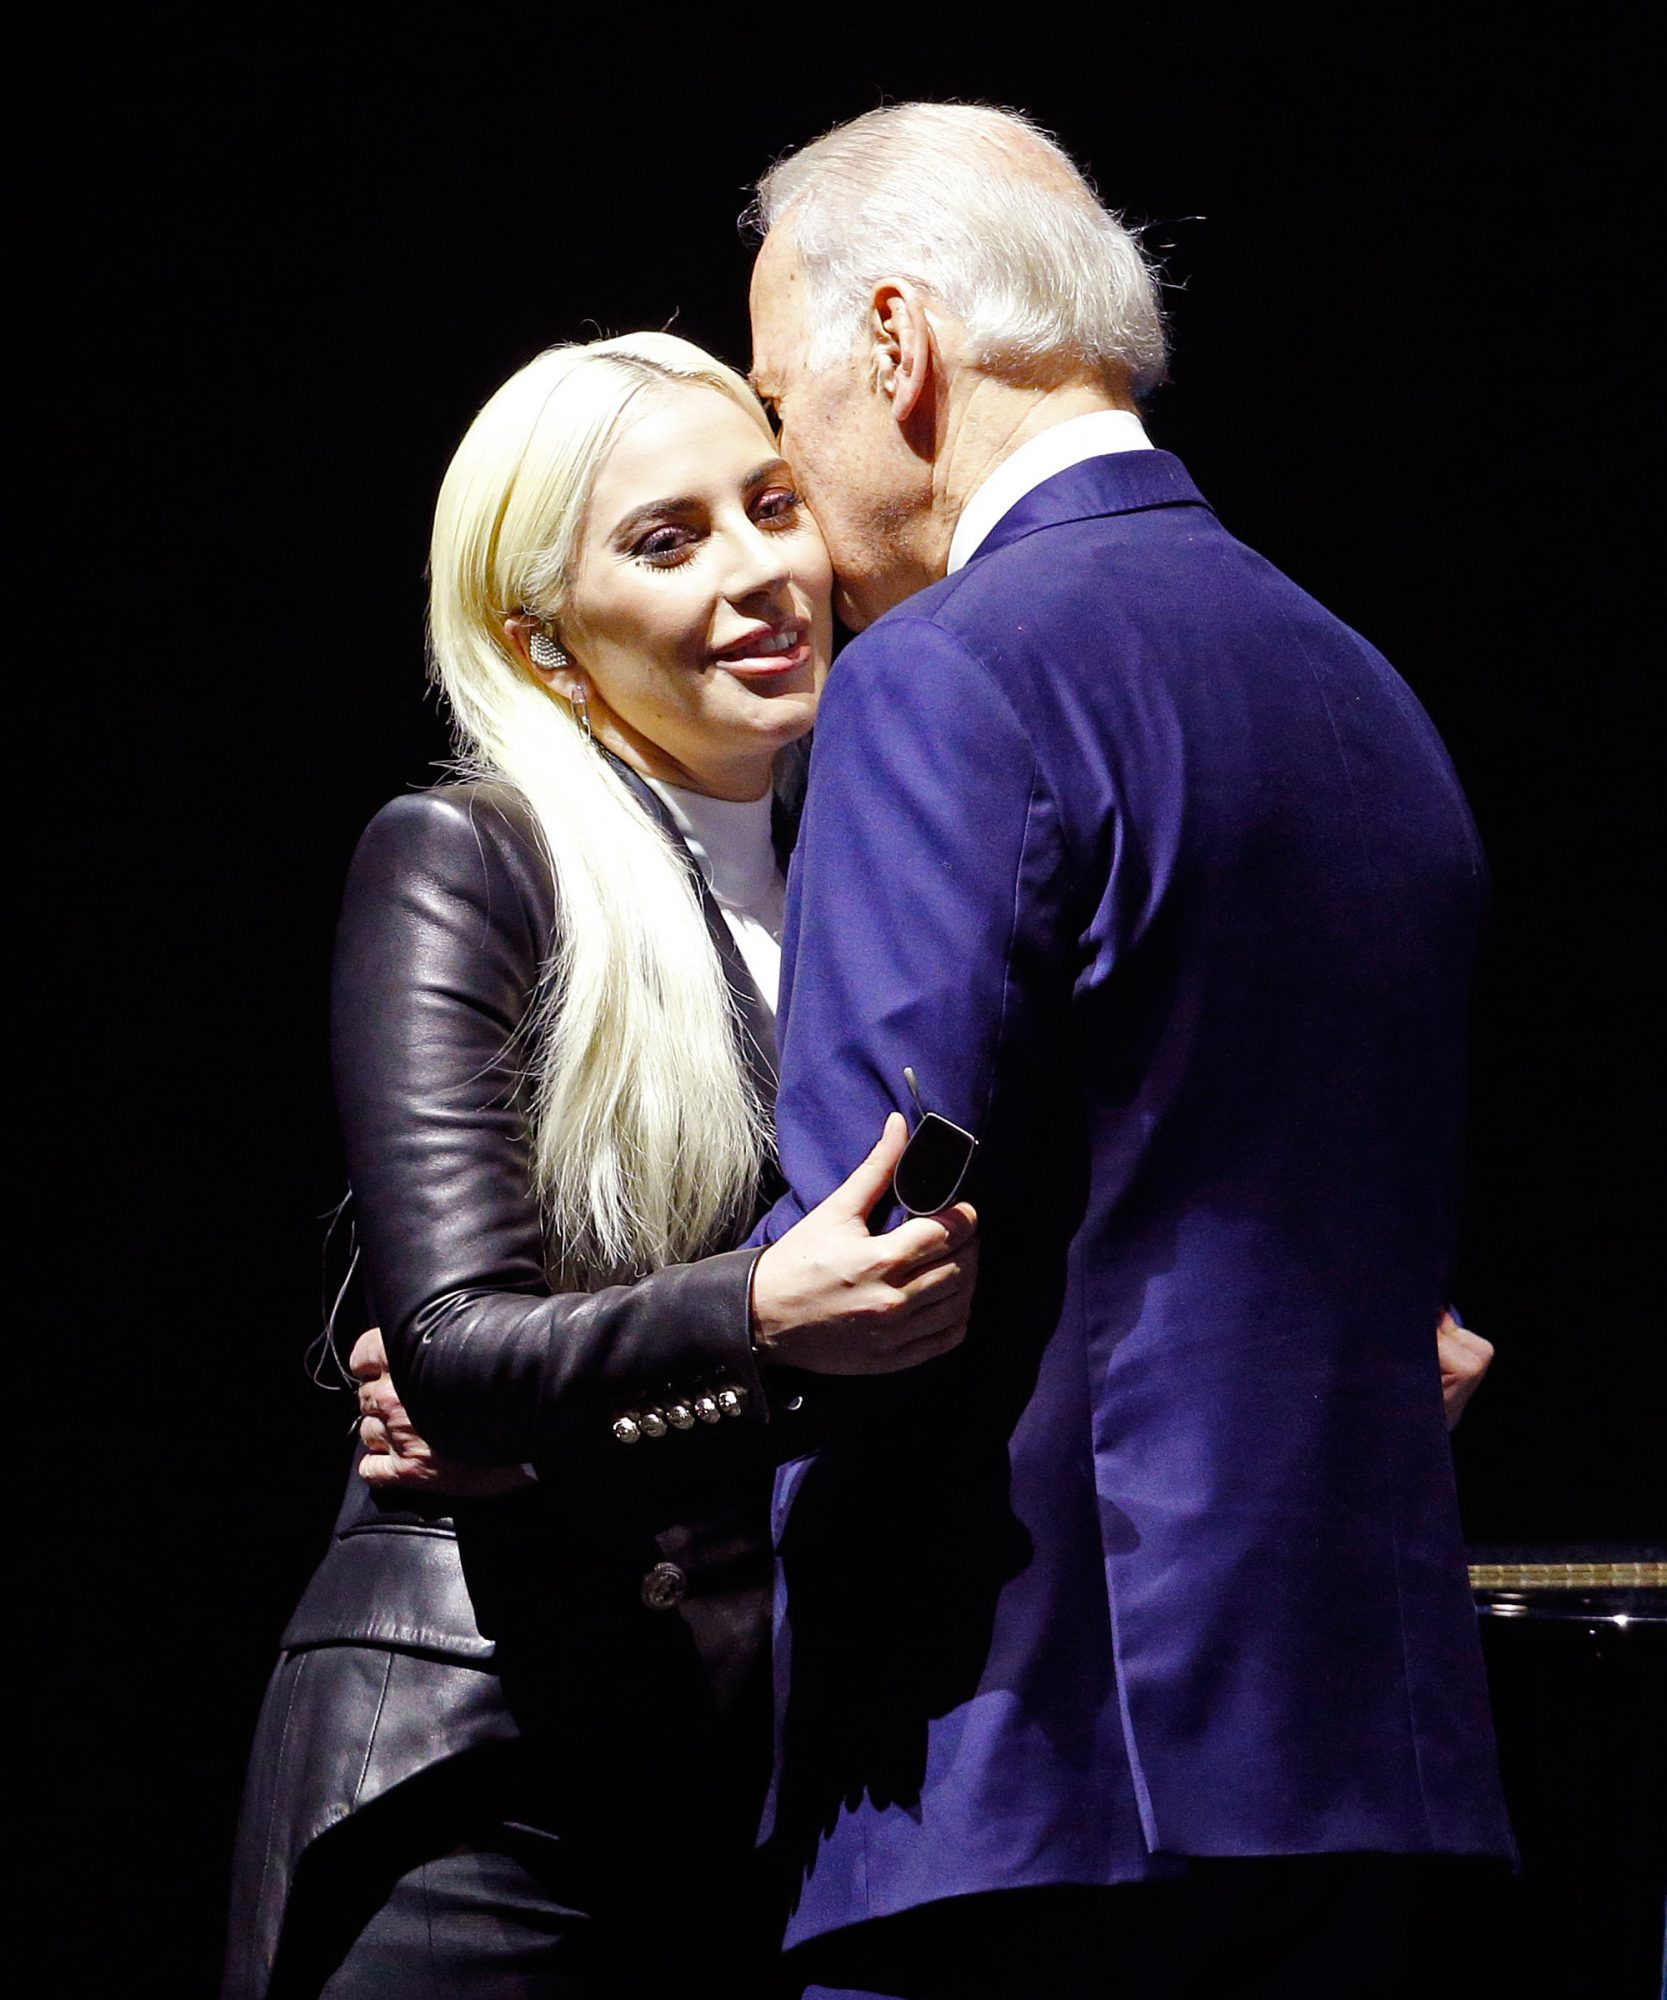 Joe Biden & Lady Gaga - LEAD